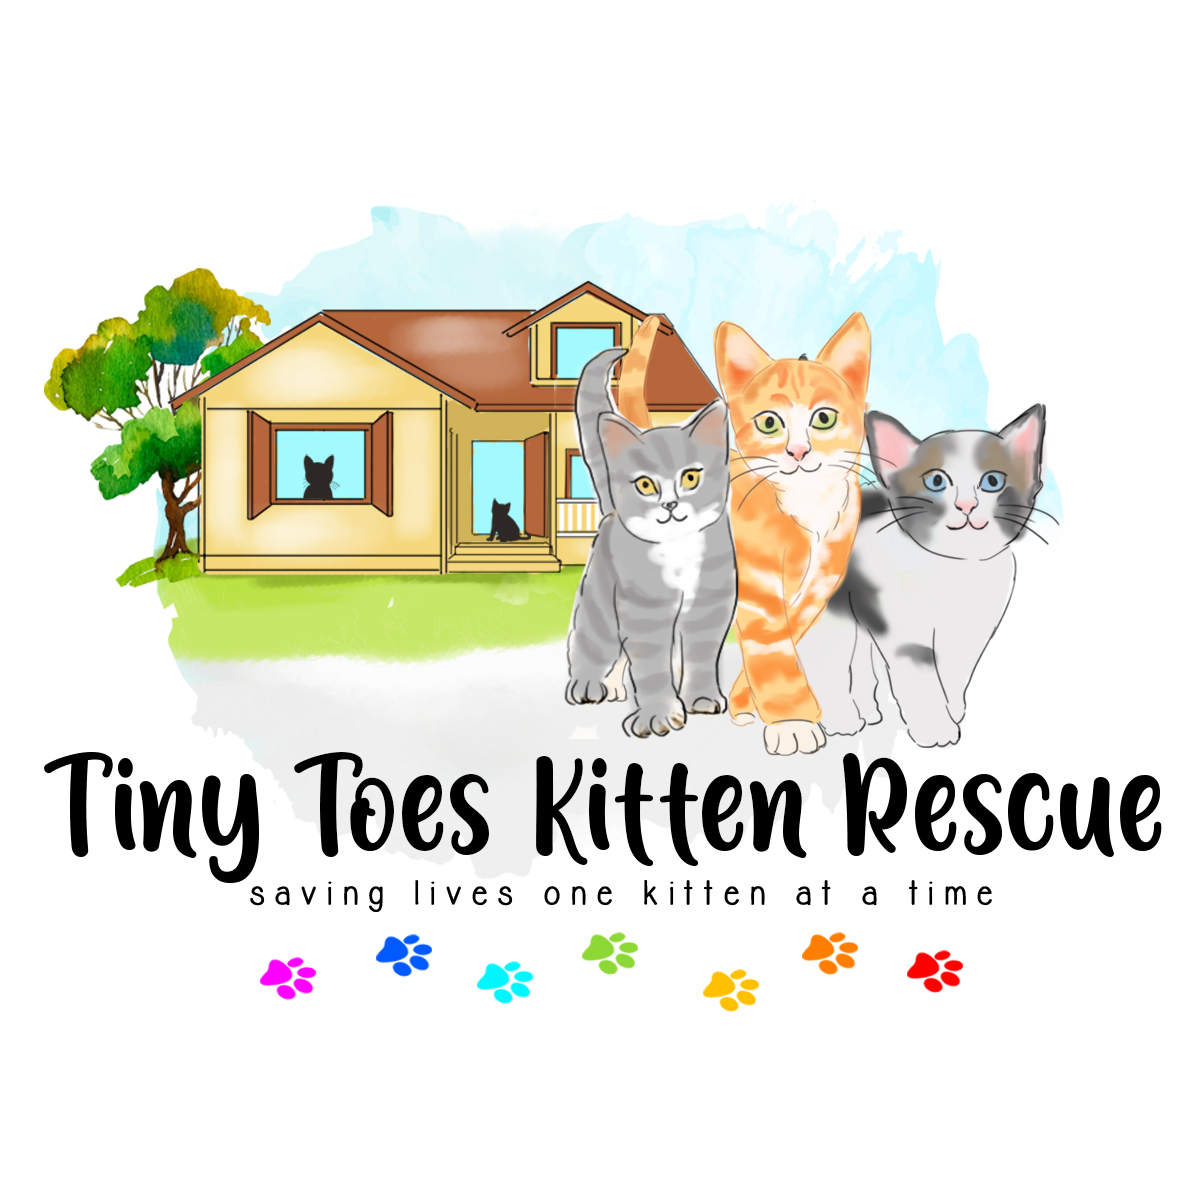 Tiny Toes Kitten Rescue